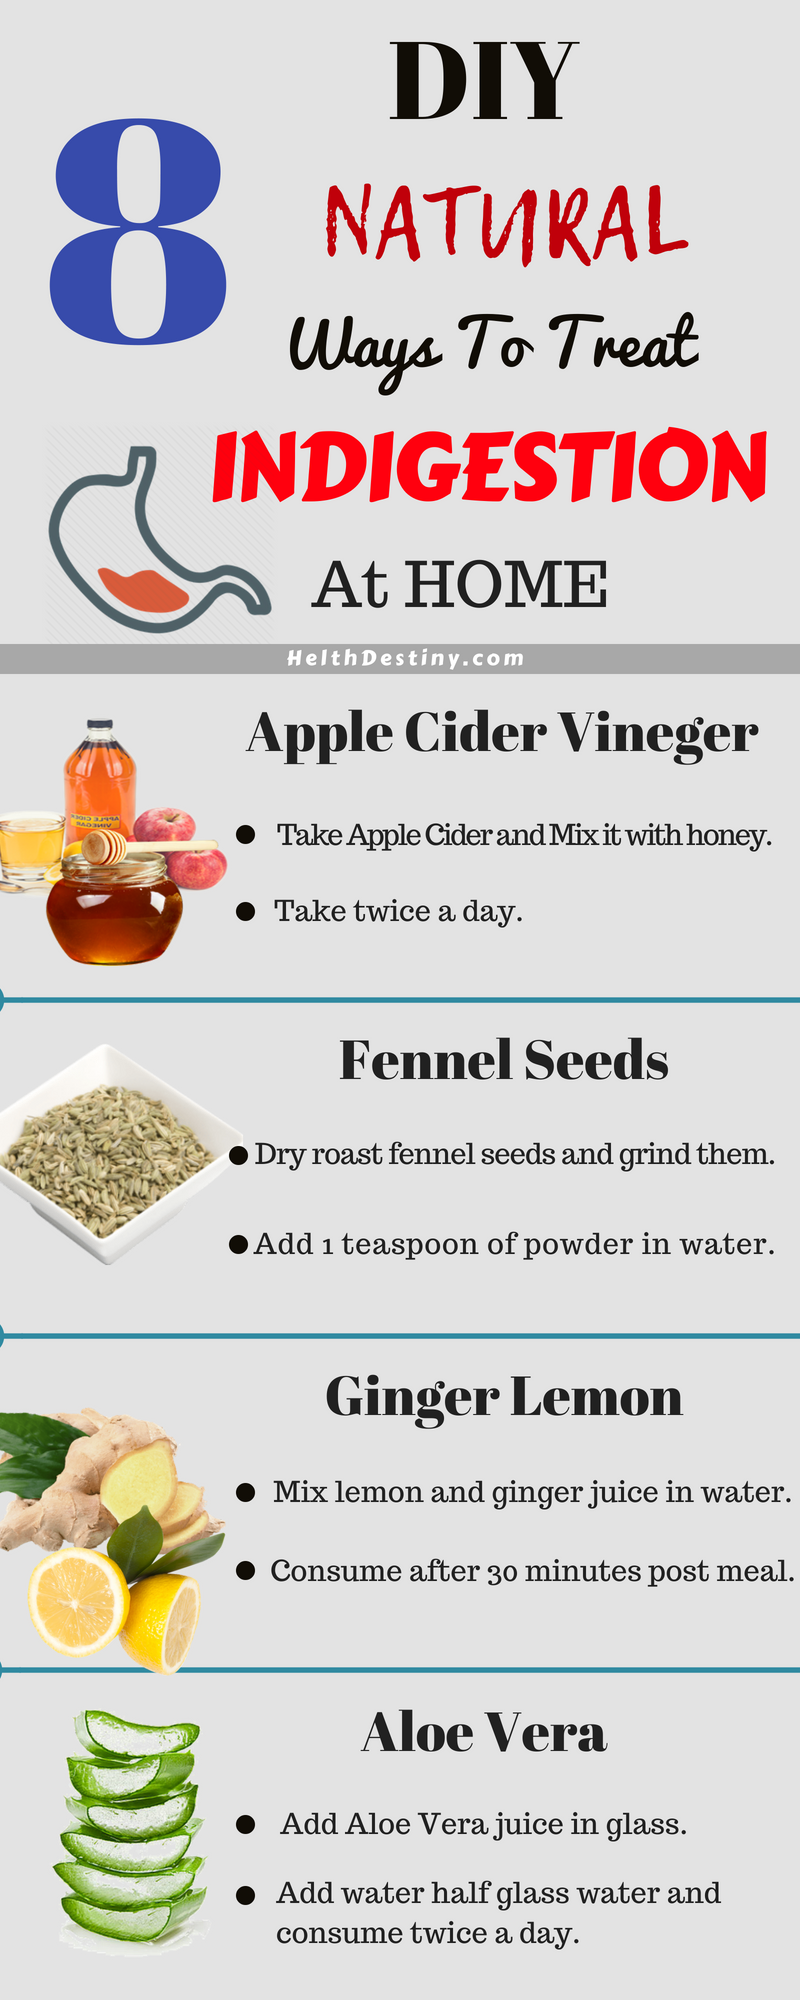 indigestion/acidity 8 natural ways to treat at home | all helpful